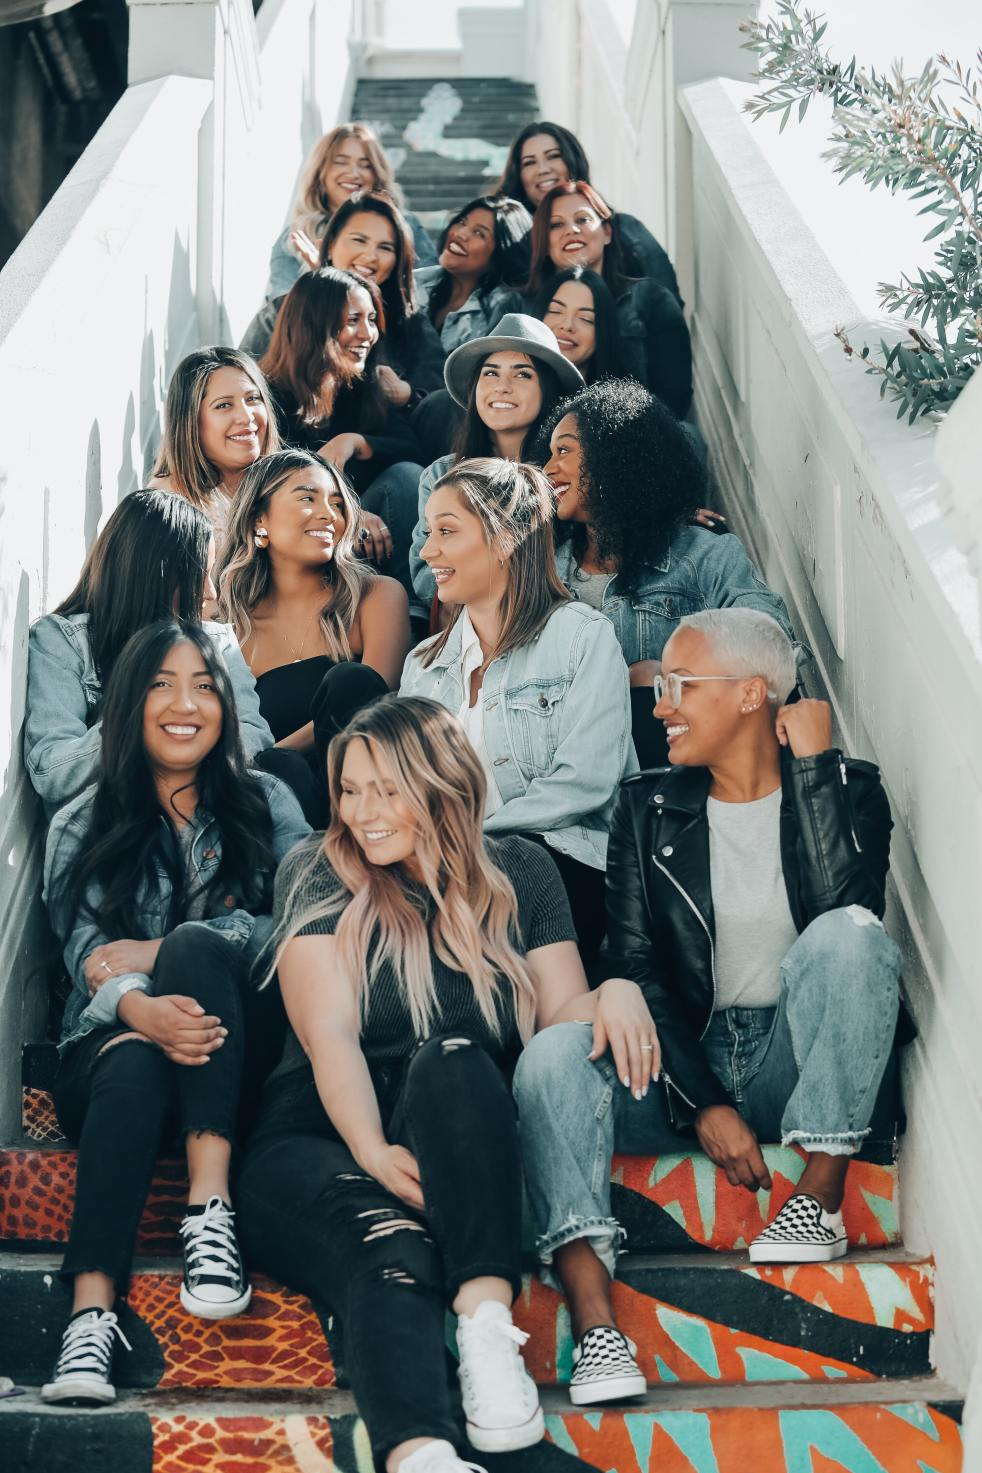 A group of women sitting on a staircase, looking happy with each other.